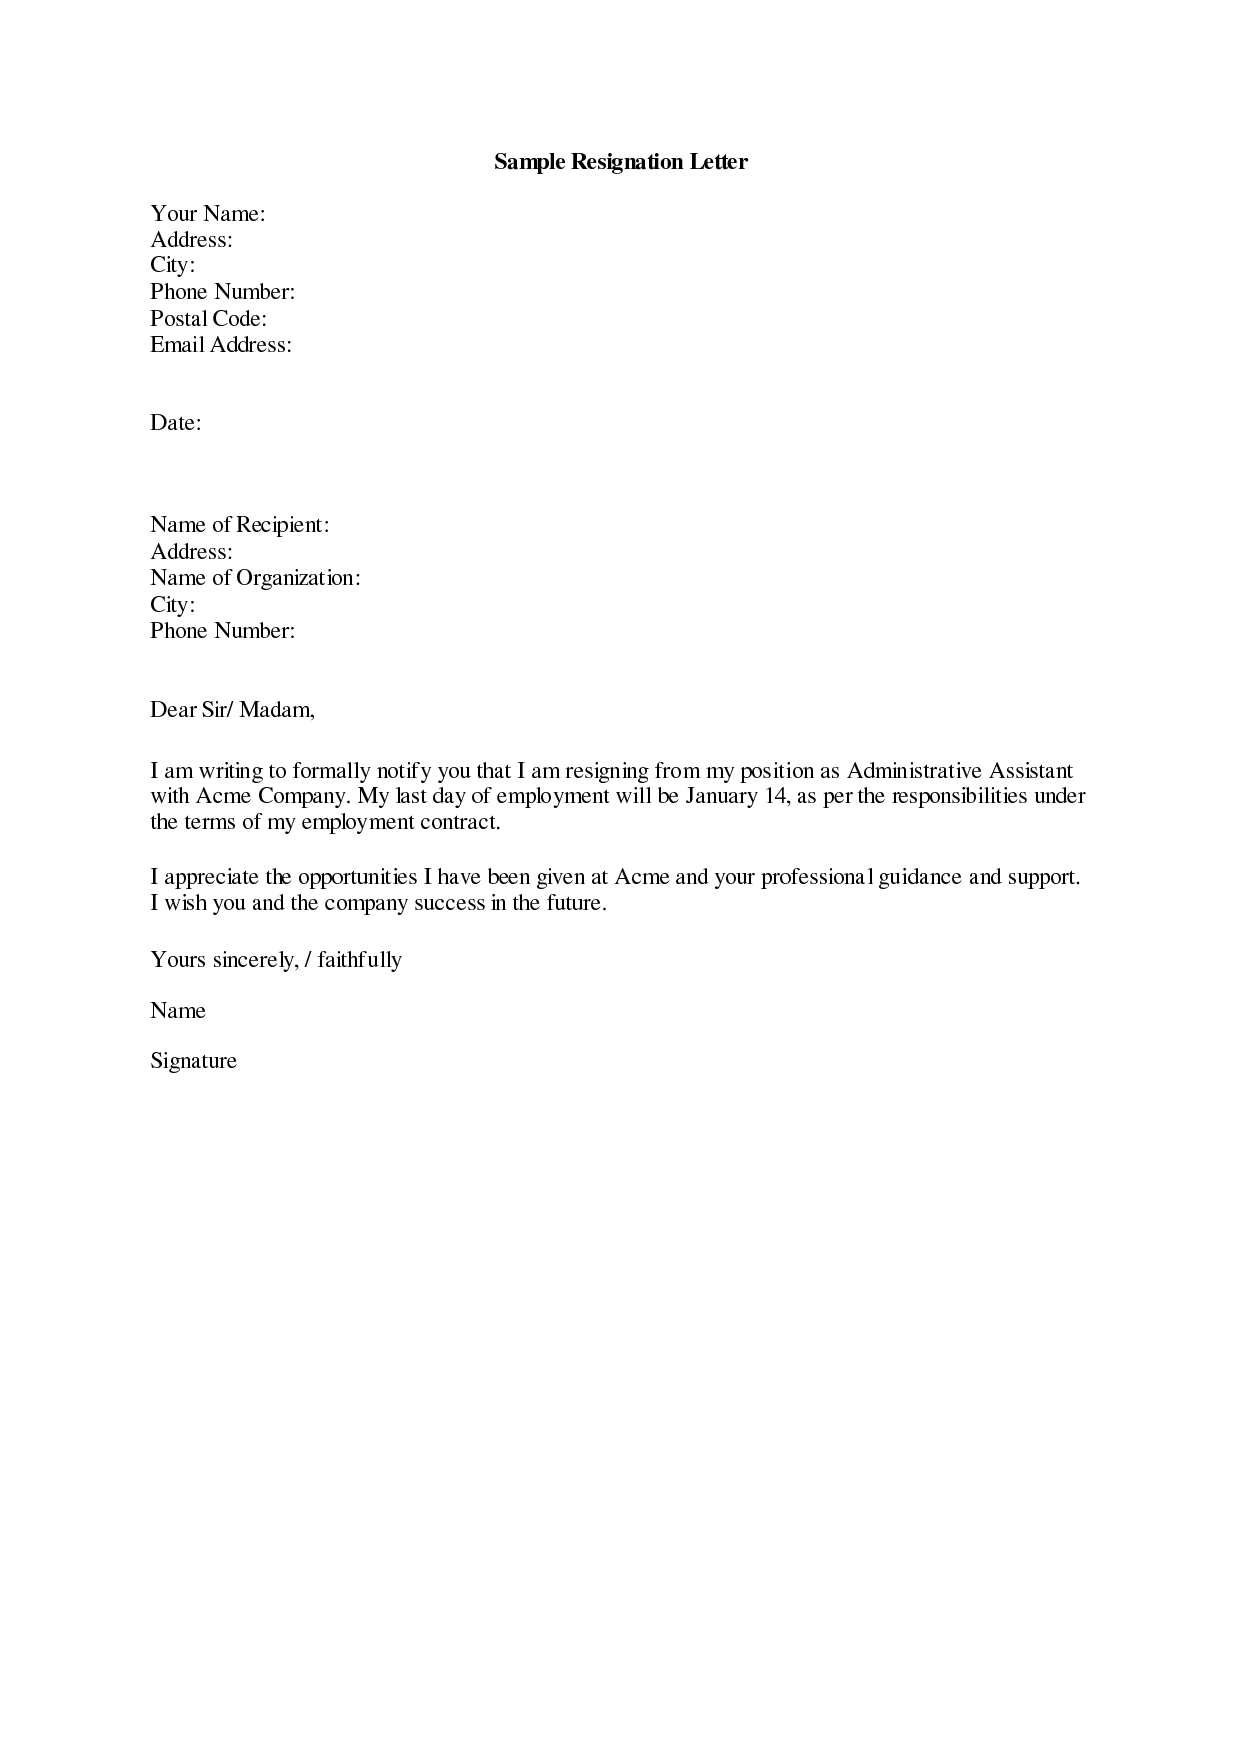 Resignation letter template google search employment pinterest resignation letter template google search expocarfo